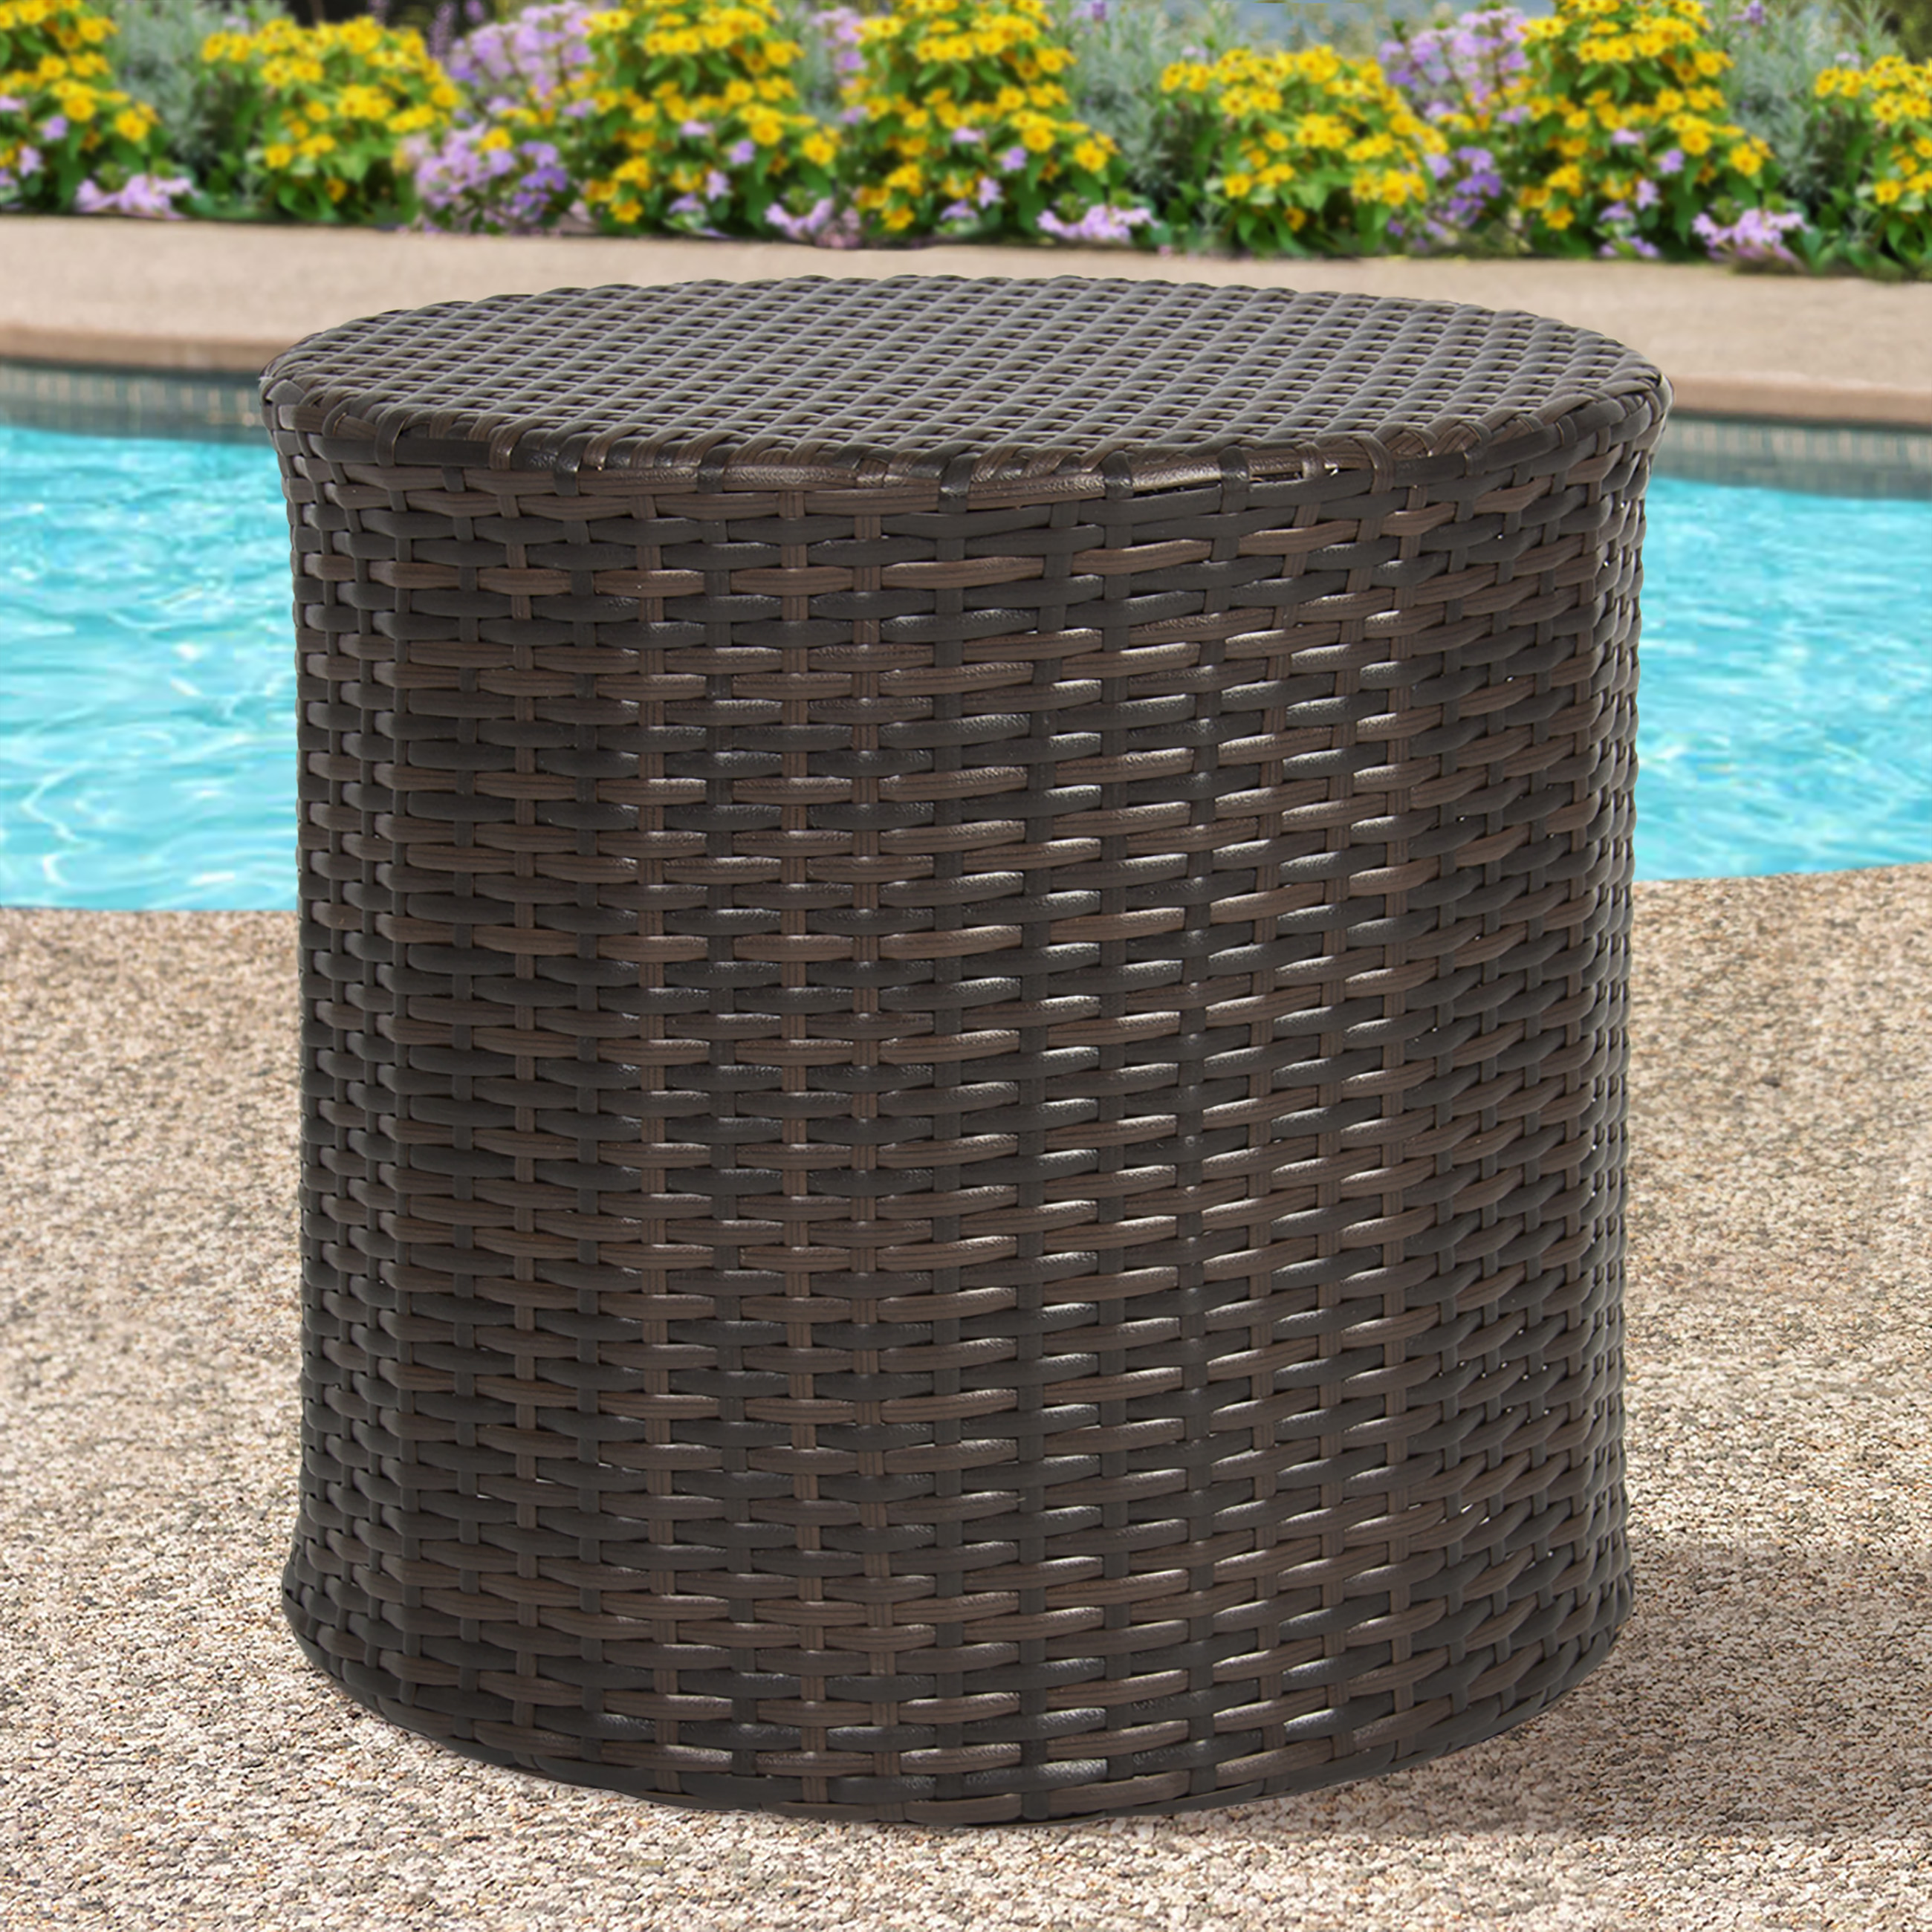 etsy wallpaper probably outrageous best the brown wicker side table patio end choice products outdoor rattan barrel furniture garden backyard pool glass top comfortable armchairs